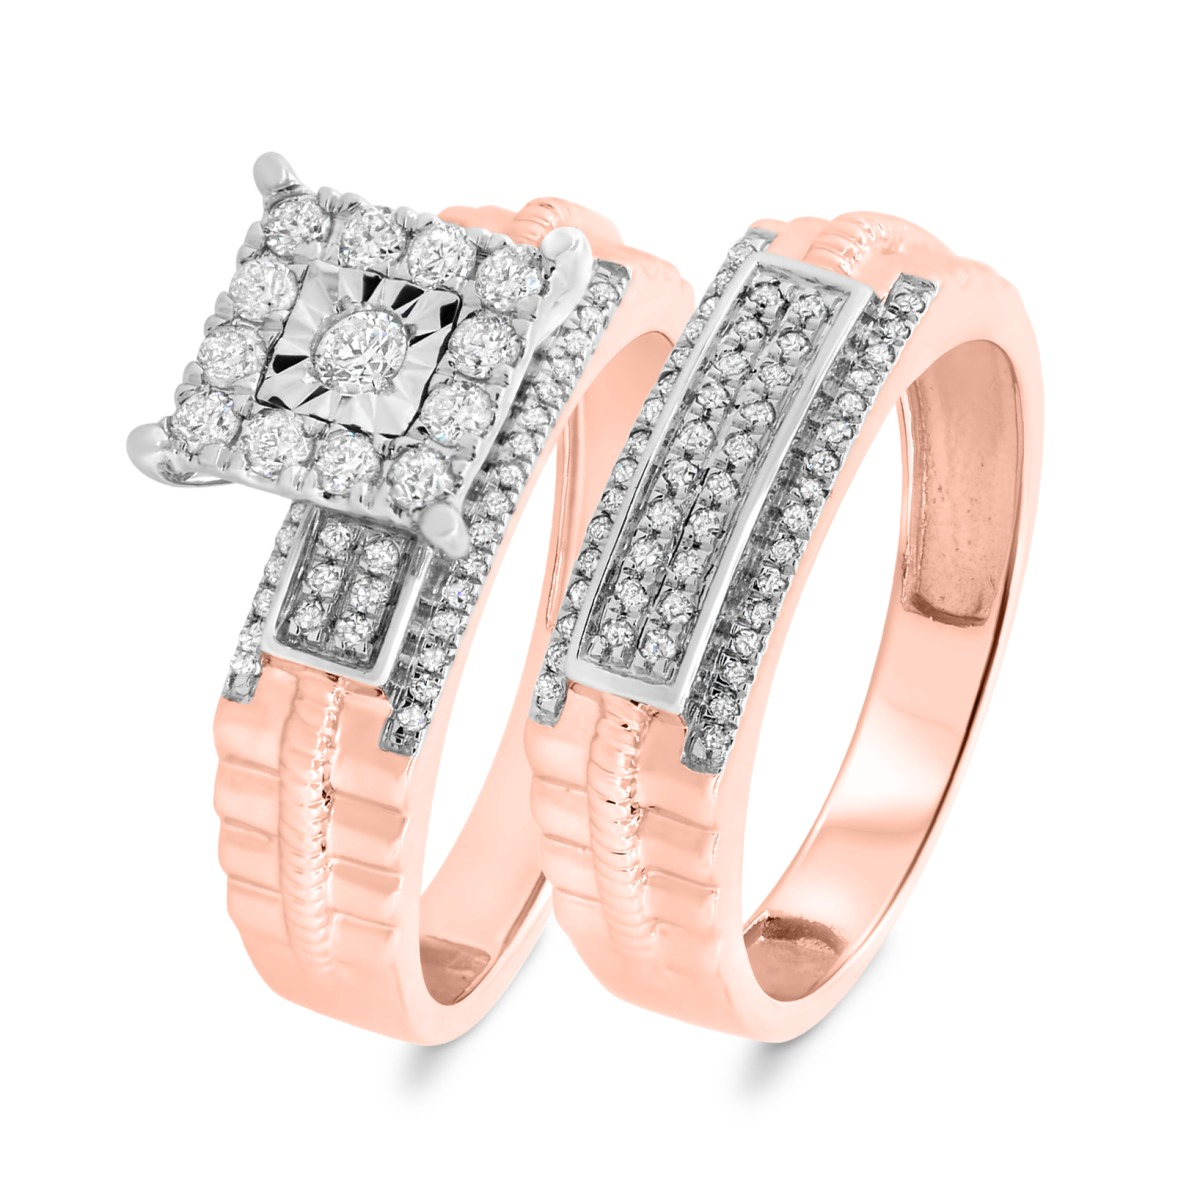 1/2 CT. T.W. Diamond Matching Bridal Ring Set 14K Rose Gold